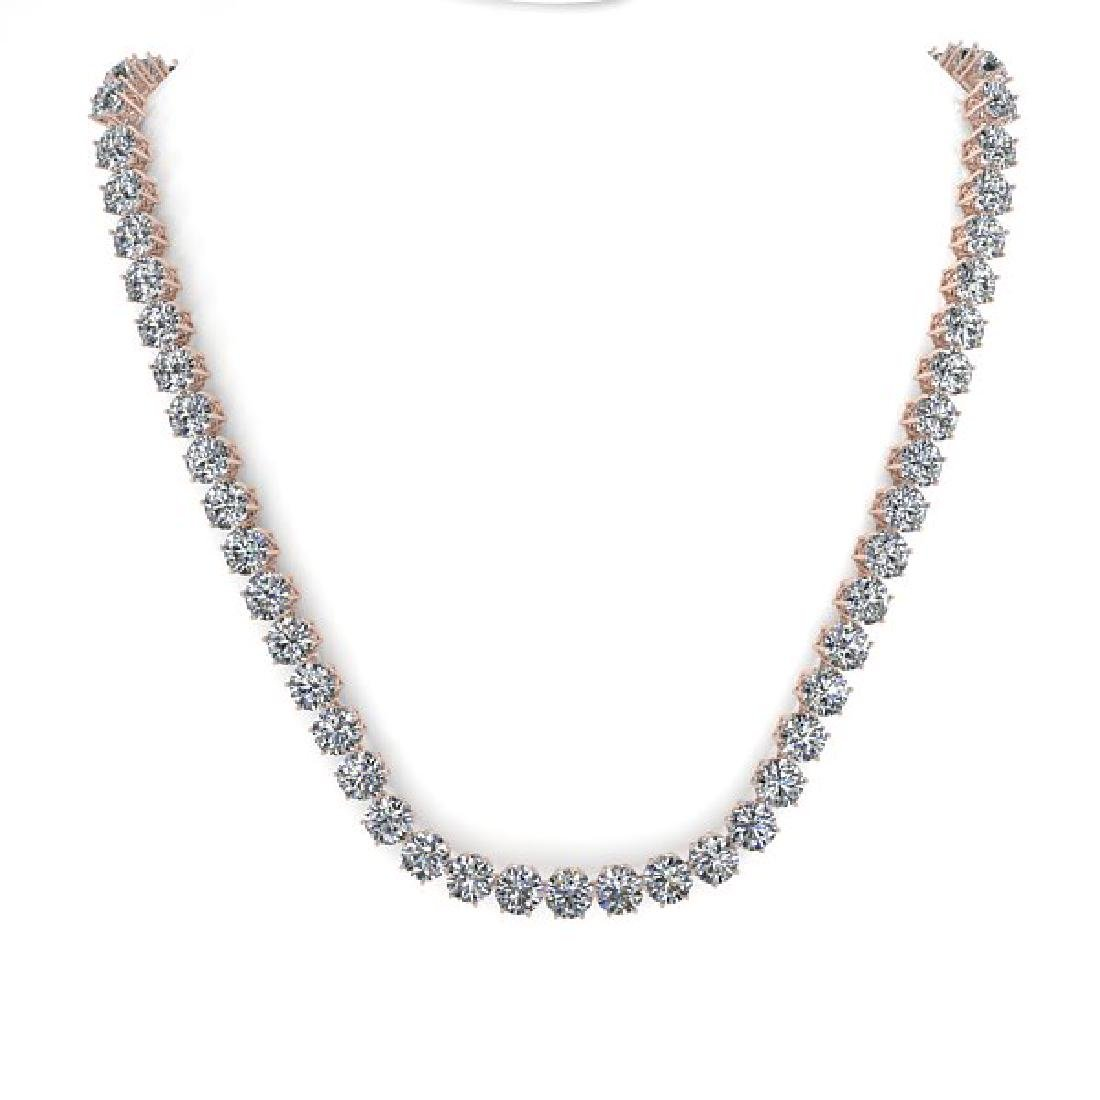 33 CTW SI Certified Diamond Necklace 18K Rose Gold - 2